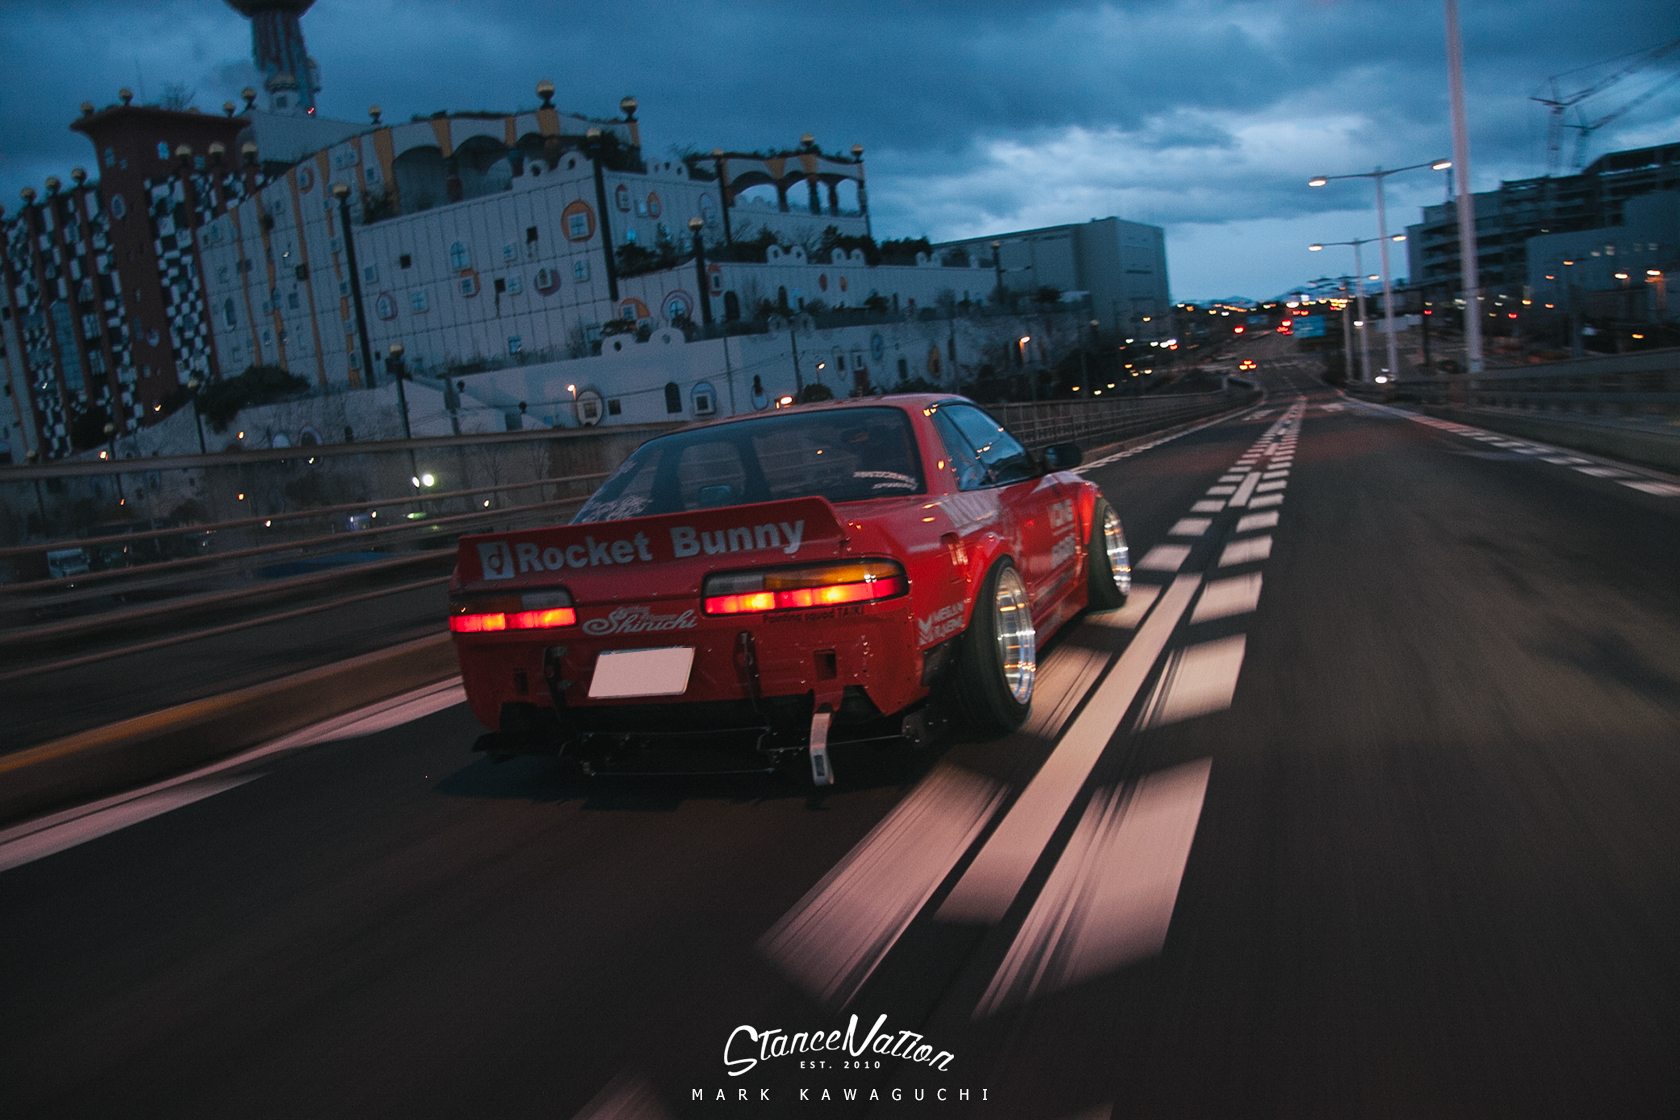 rocket-bunny-nissan-japan-6666-customs-S13-16